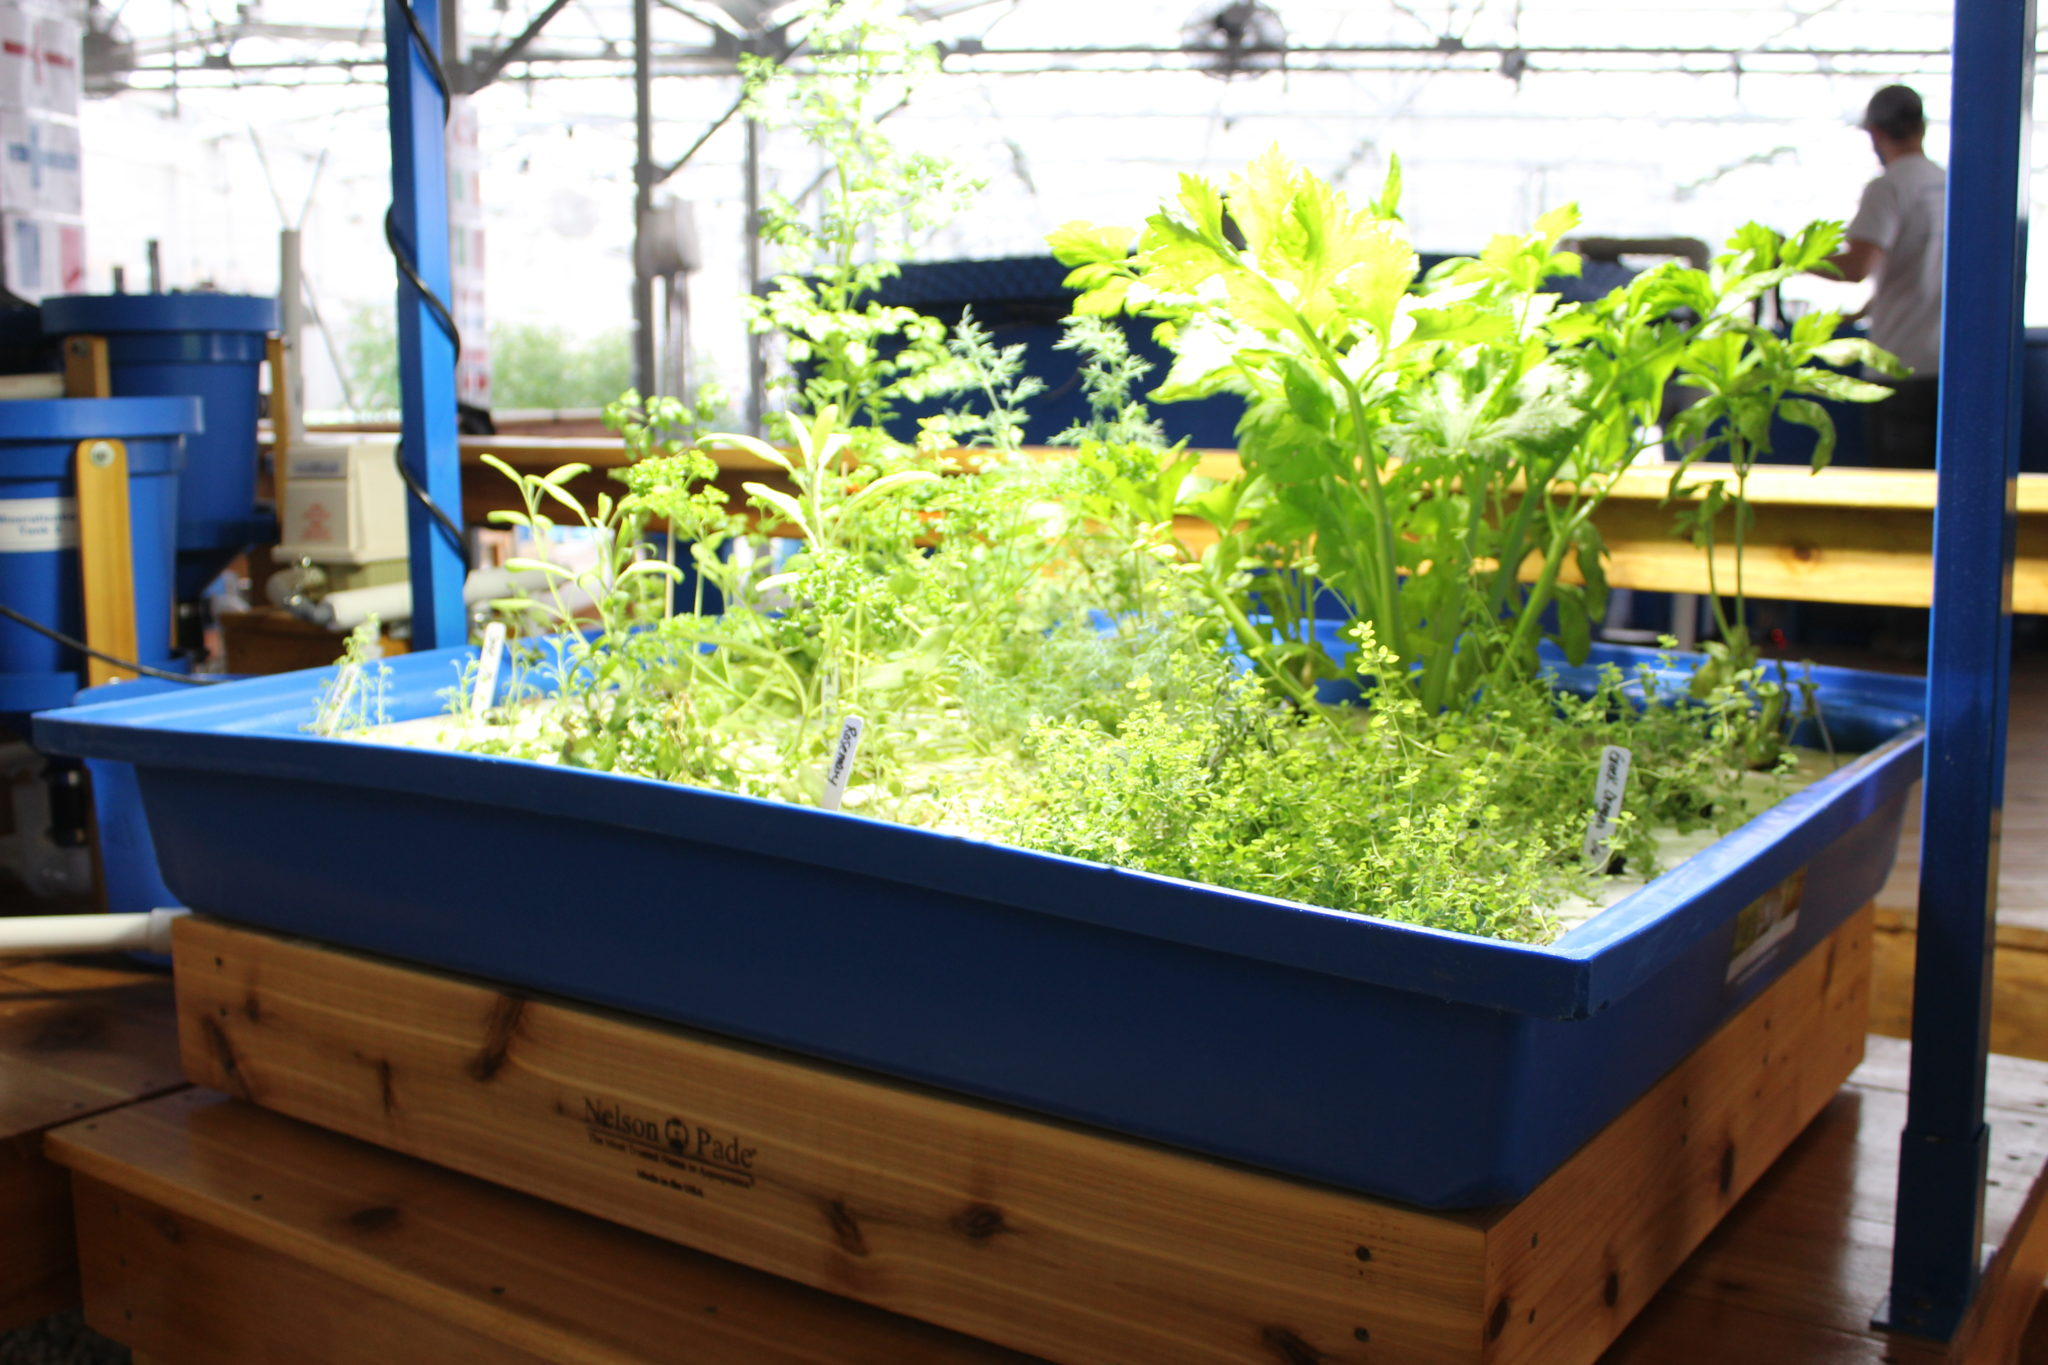 Introduction to aquaponic gardening